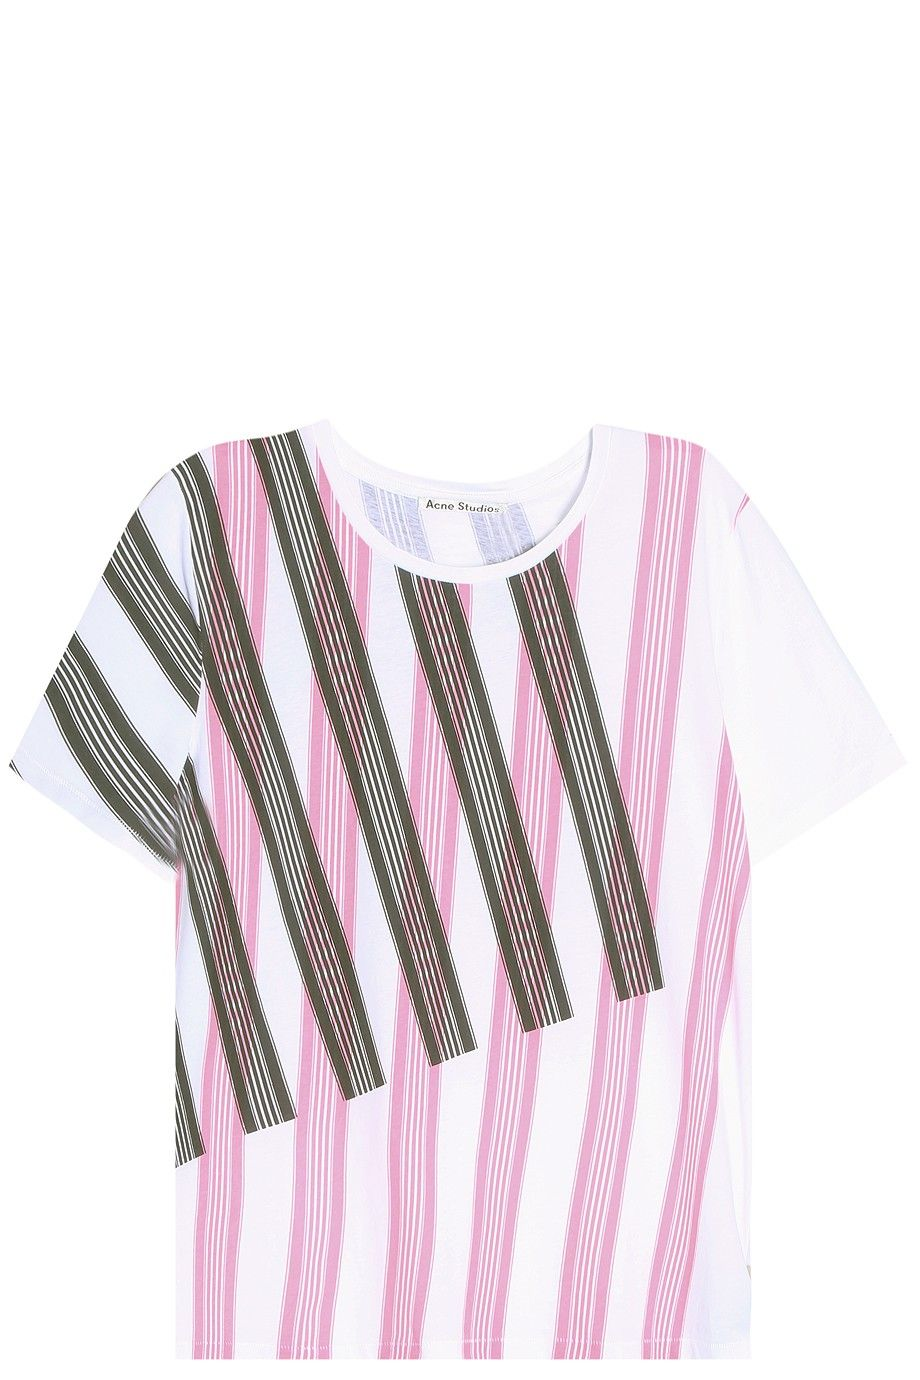 SS16 | Acne Studios Vista Stripe T-shirt. Available in-store and on Boutique1.com